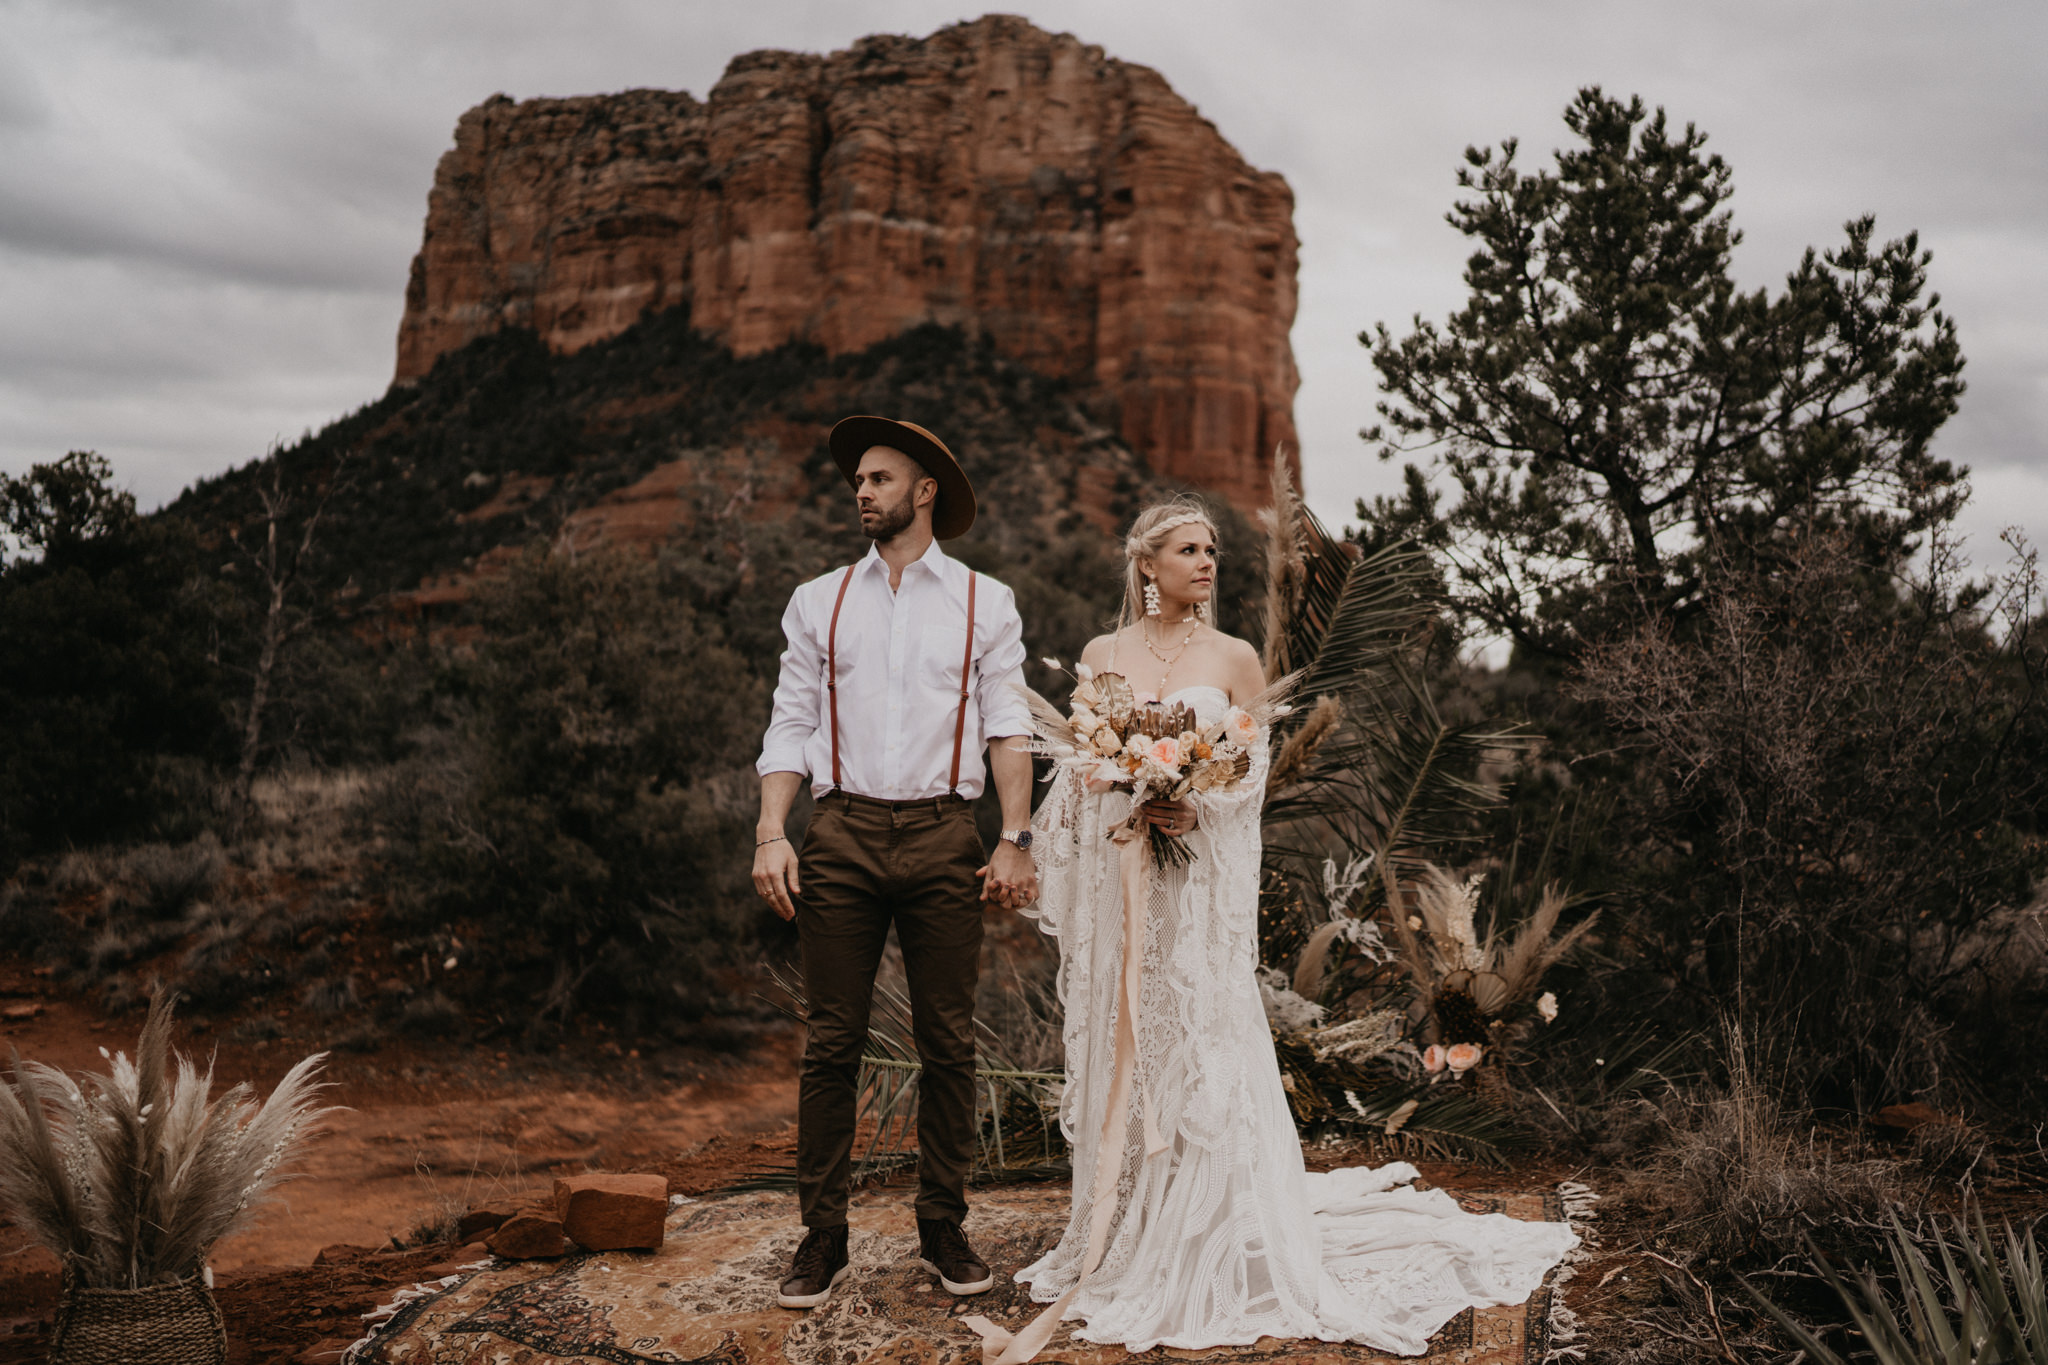 Intimate elopement in the red rocks of Sedona Arizona